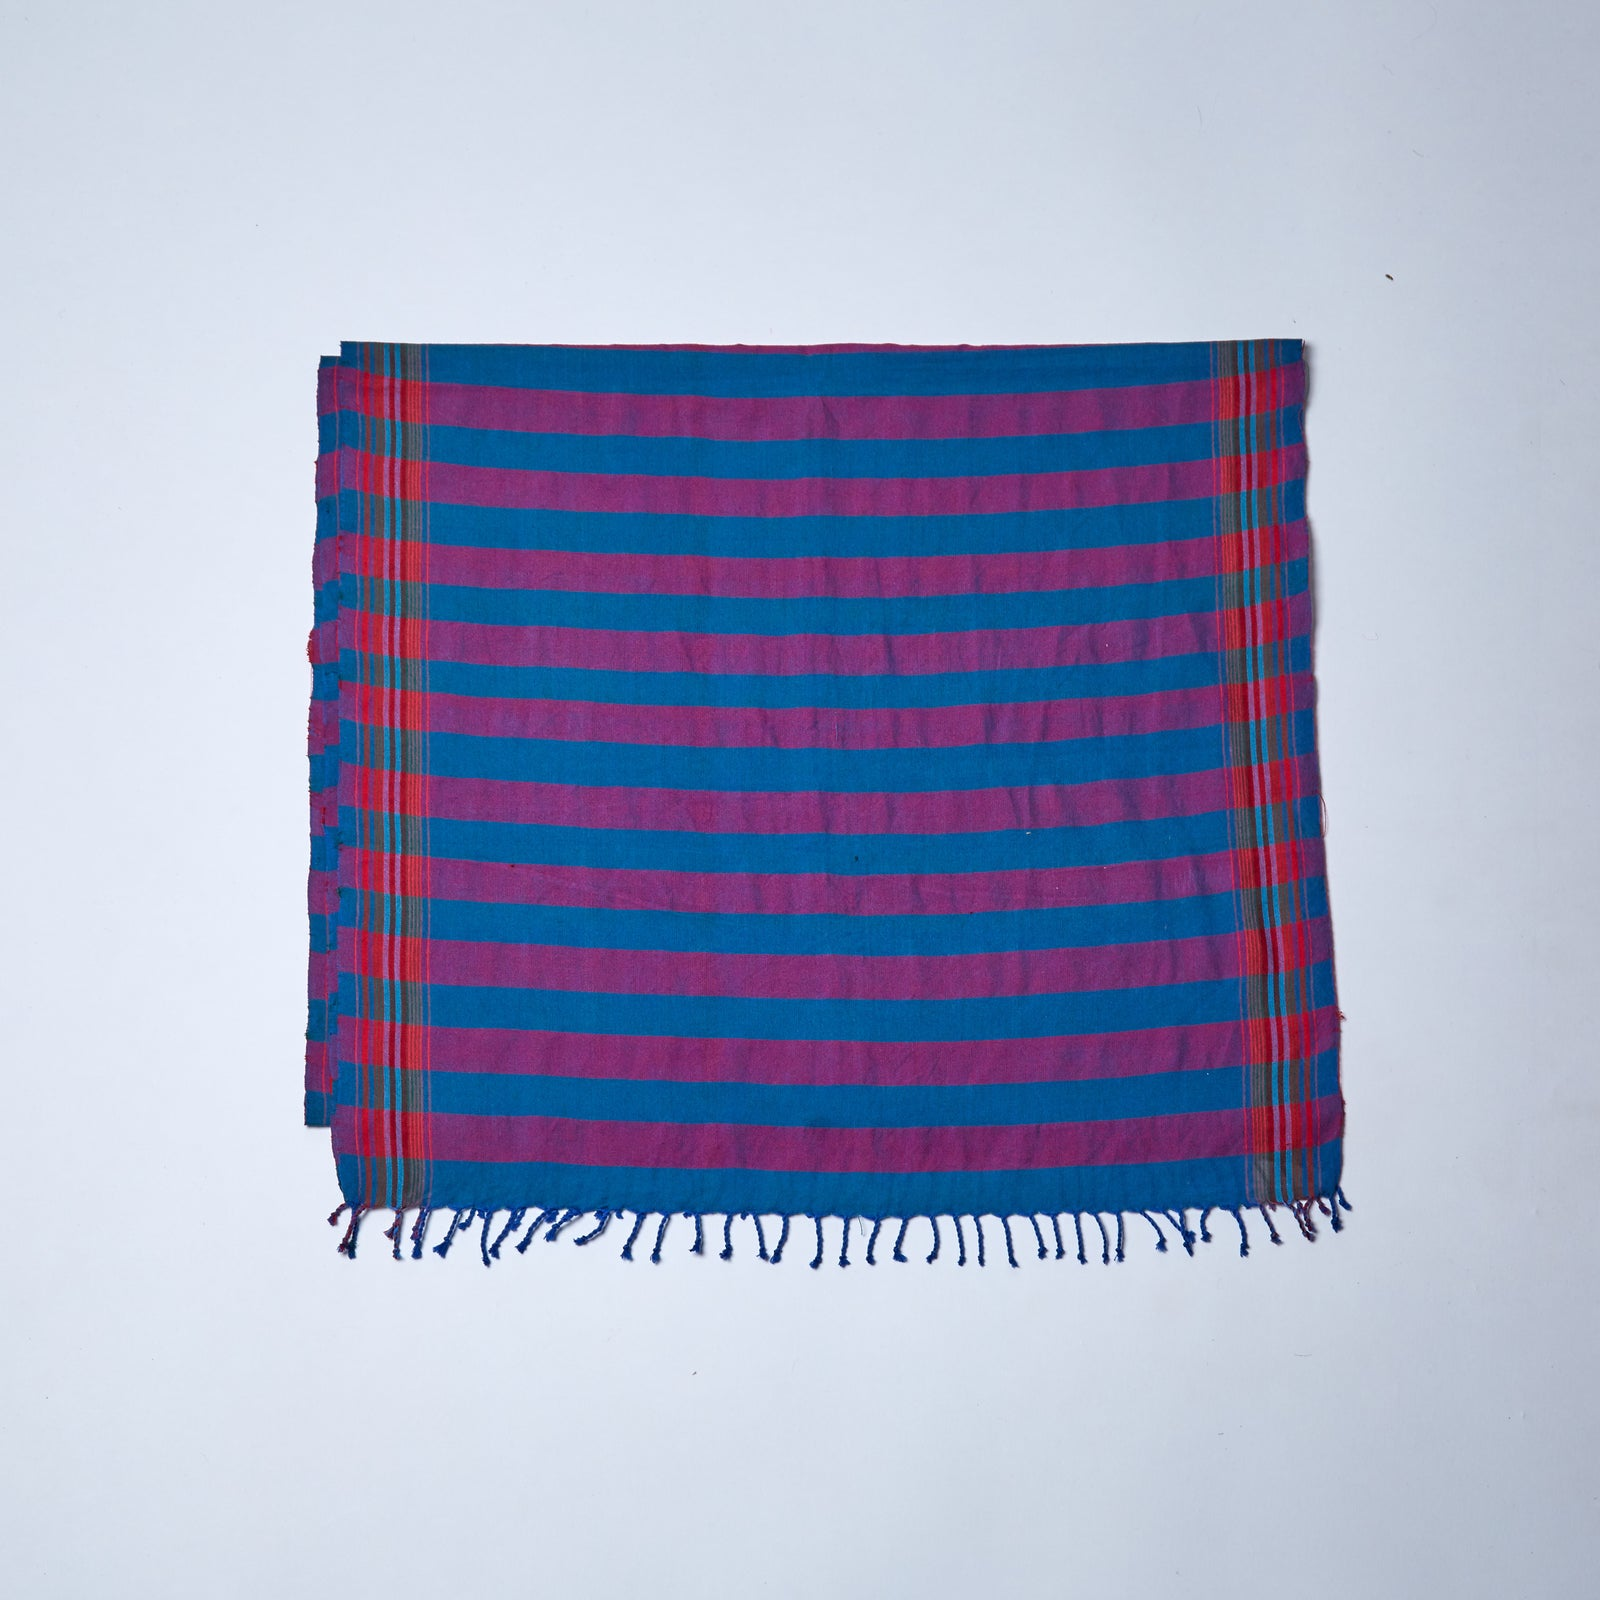 Fine Cotton Scarf. Pattee with her bright blue and magenta stripes is undeniably striking and unforgettable, she will be hard to lose or leave behind and will brighten even your most dismal day.